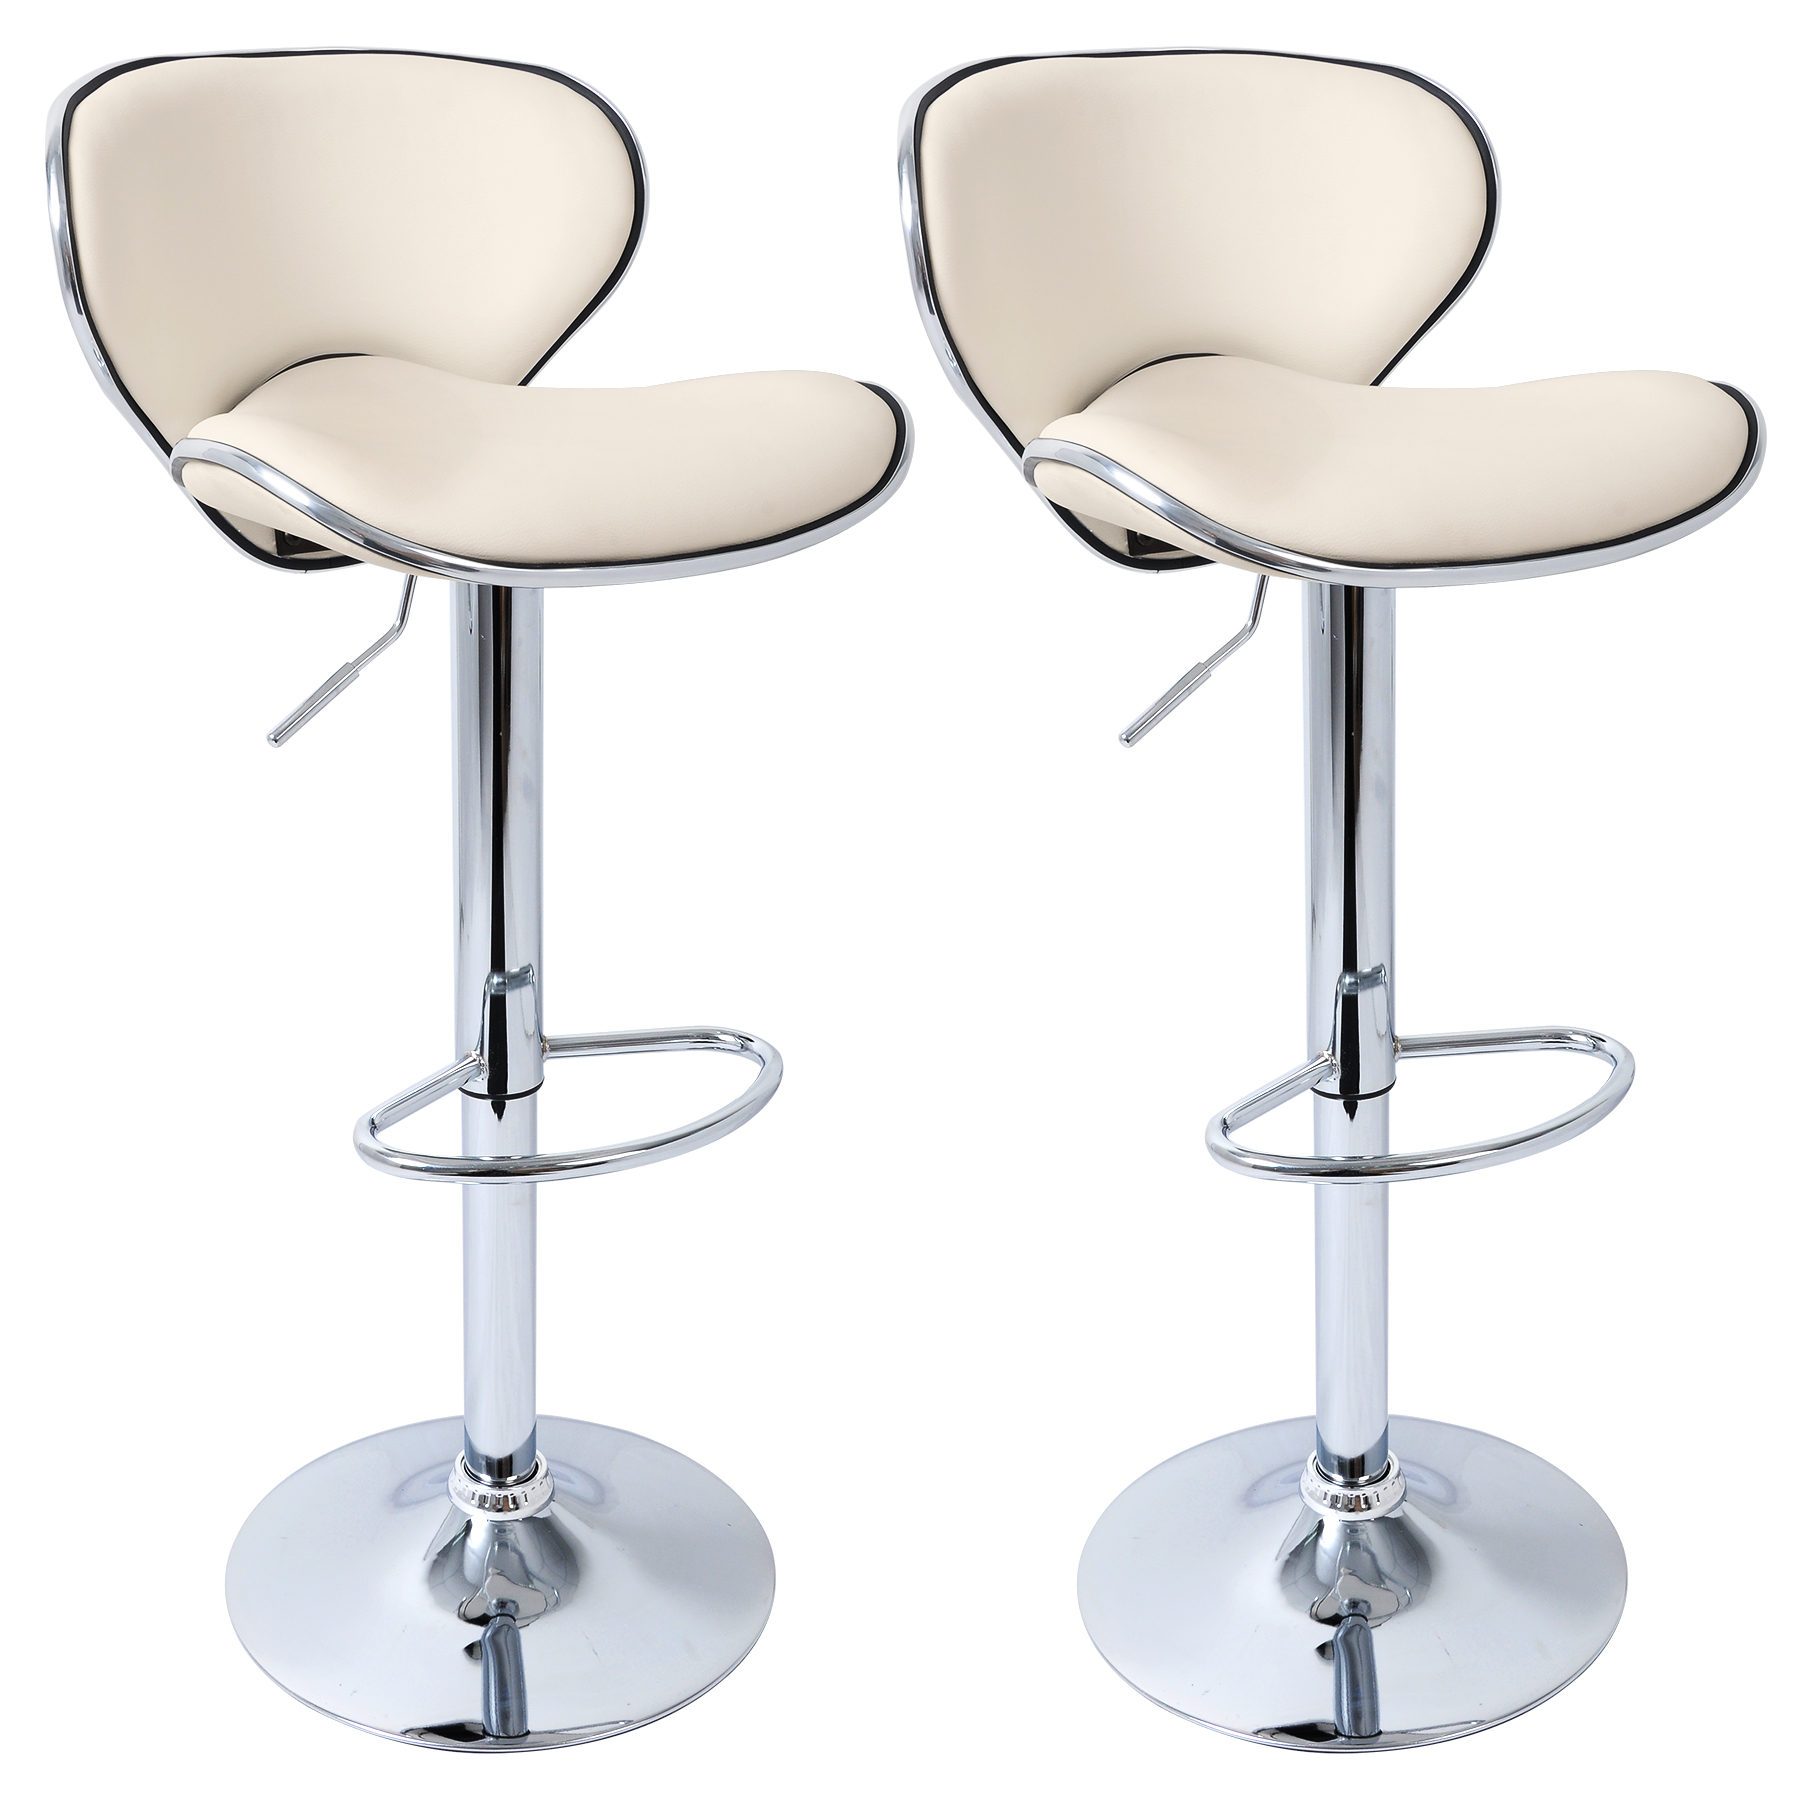 2 x Bar Stools Kitchen Chair Swivel Breakfast Stool Chrome